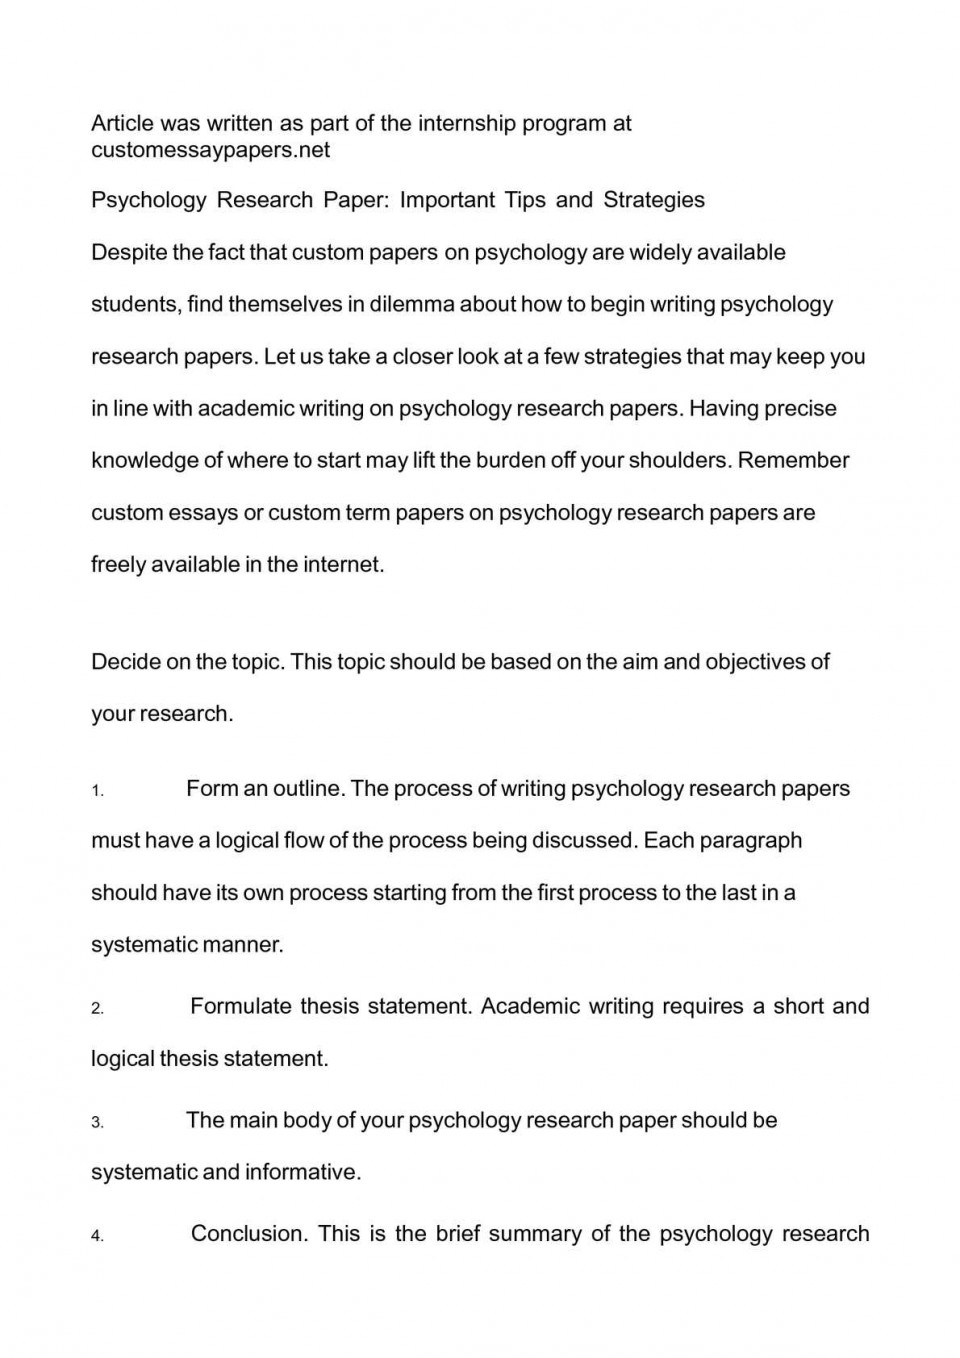 017 P1 Research Paper Psychology Topics Awesome List Topic Ideas 960